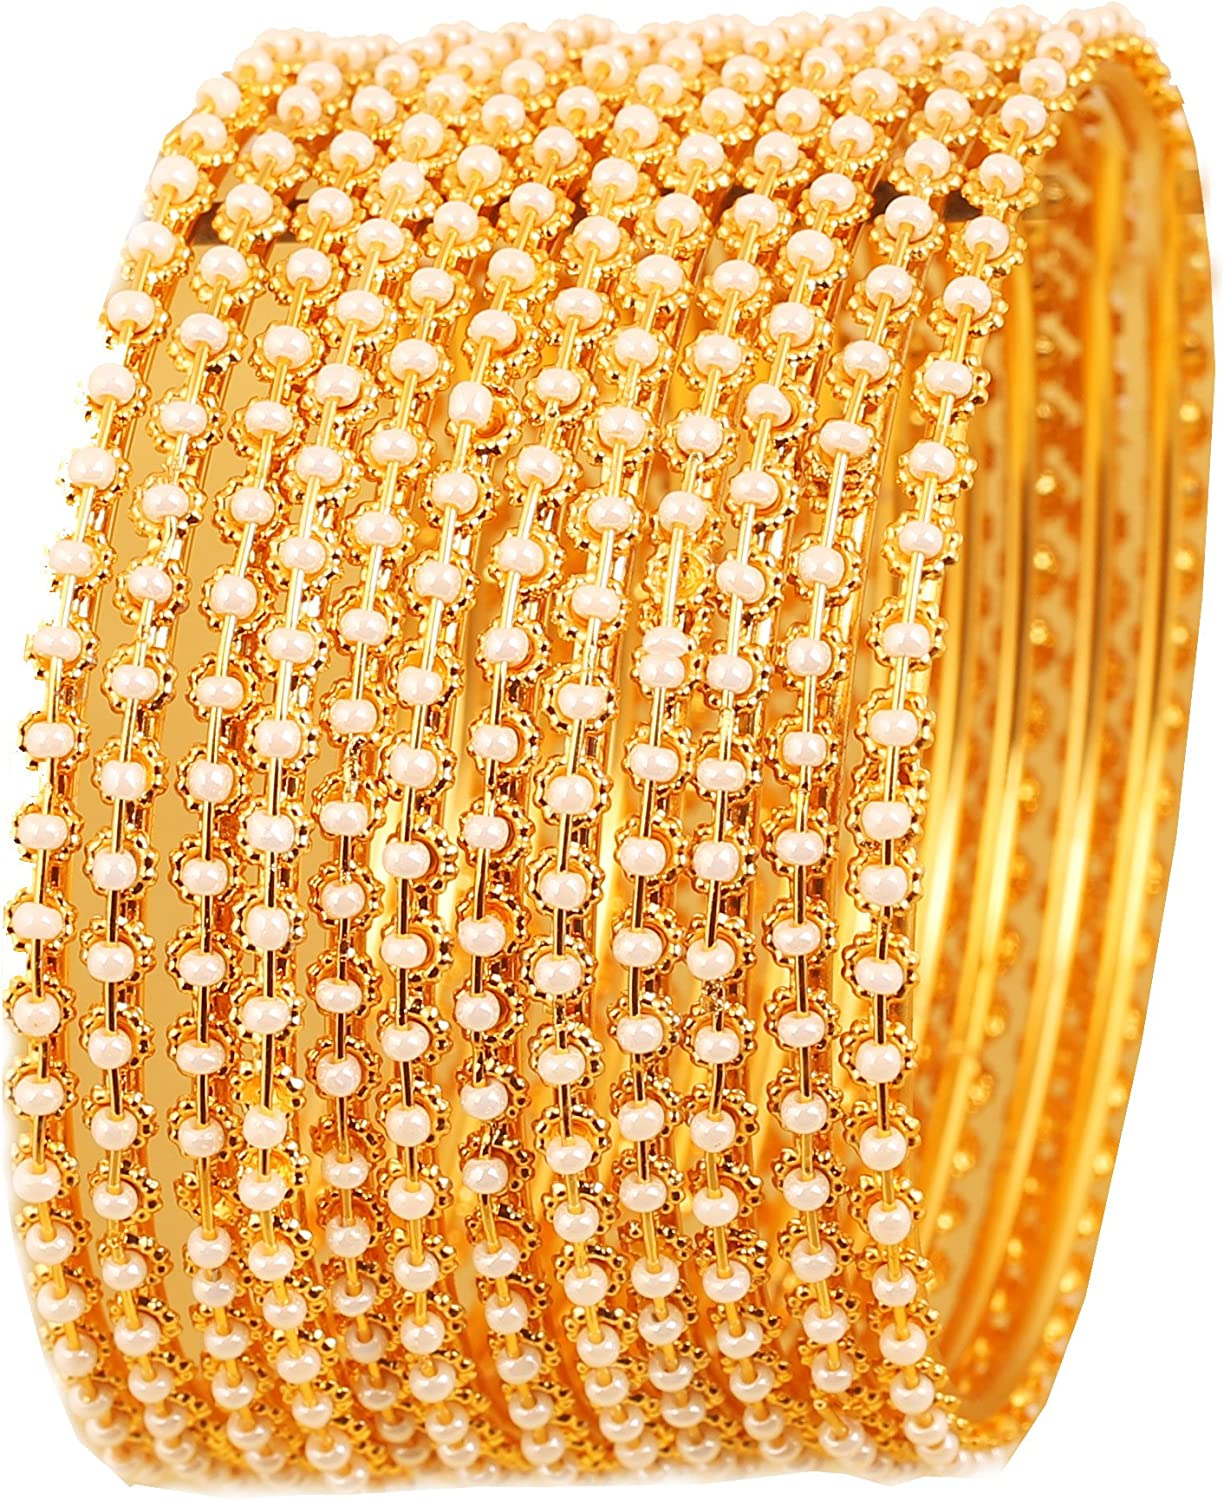 Indian Bollywood Traditional and Exclusive Thin Designer Jewelry Bangle Bracelets Embellished with Faux Pearls in Antique Gold Tone for Women. Set of 12 Touchstone New Pearl Bangle Collection